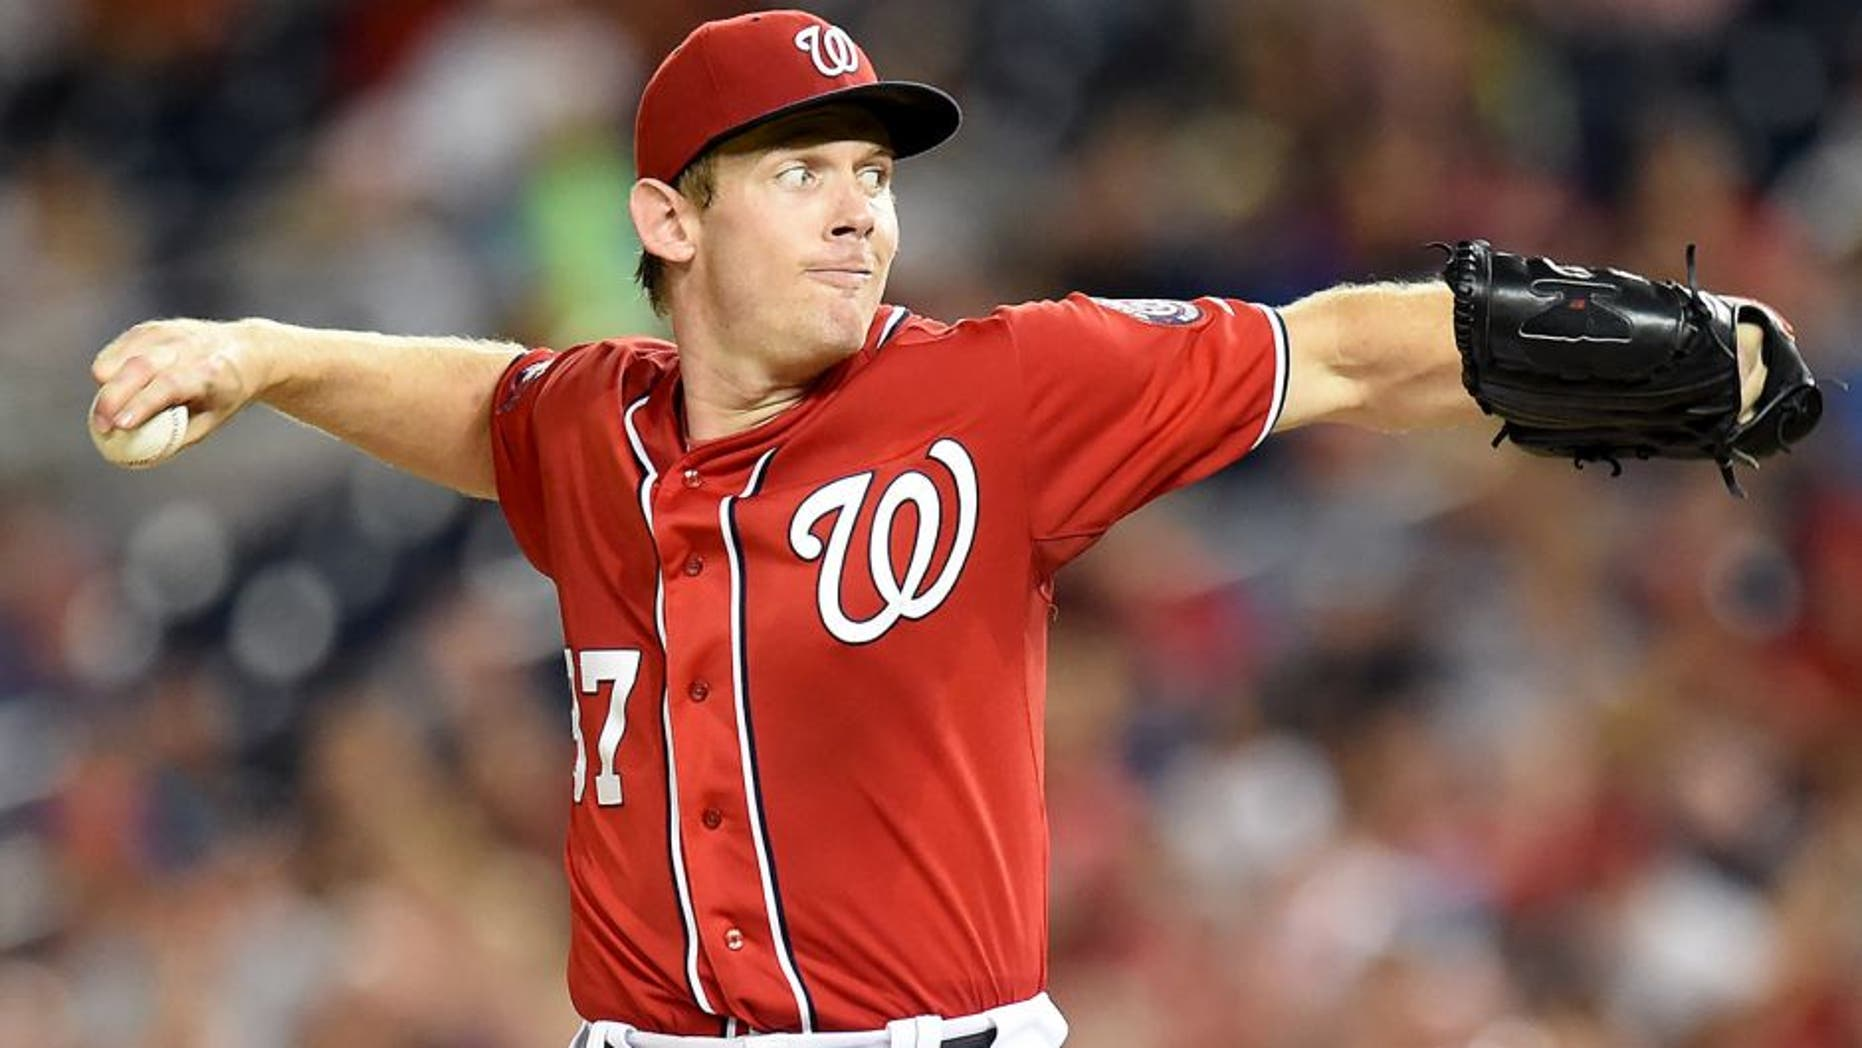 WASHINGTON, DC - AUGUST 08: Stephen Strasburg #37 of the Washington Nationals pitches in the seventh inning during a baseball game against the Colorado Rockies at Nationals Park on August 8, 2015 in Washington, DC. The Nationals won 6-1. (Photo by Mitchell Layton/Getty Images)